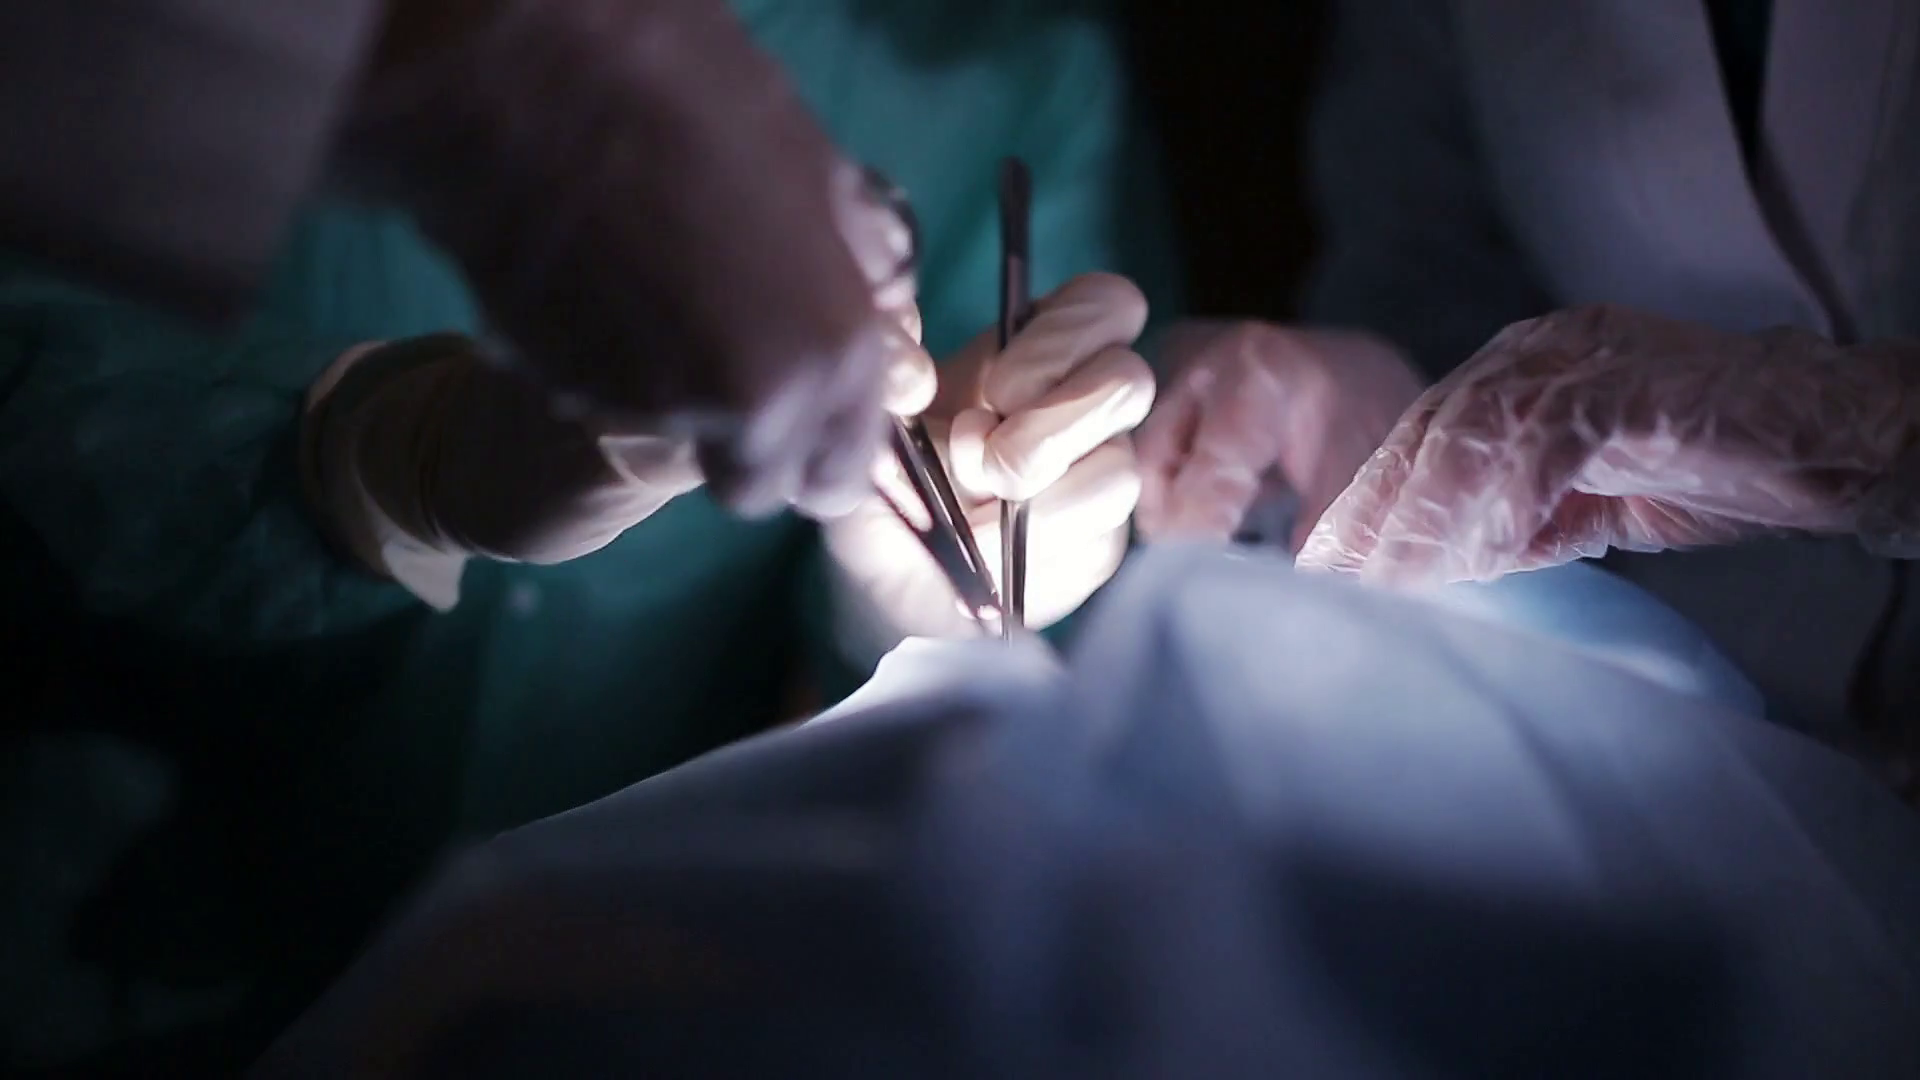 Surgeons Team Performing Operation In Hospital Theater